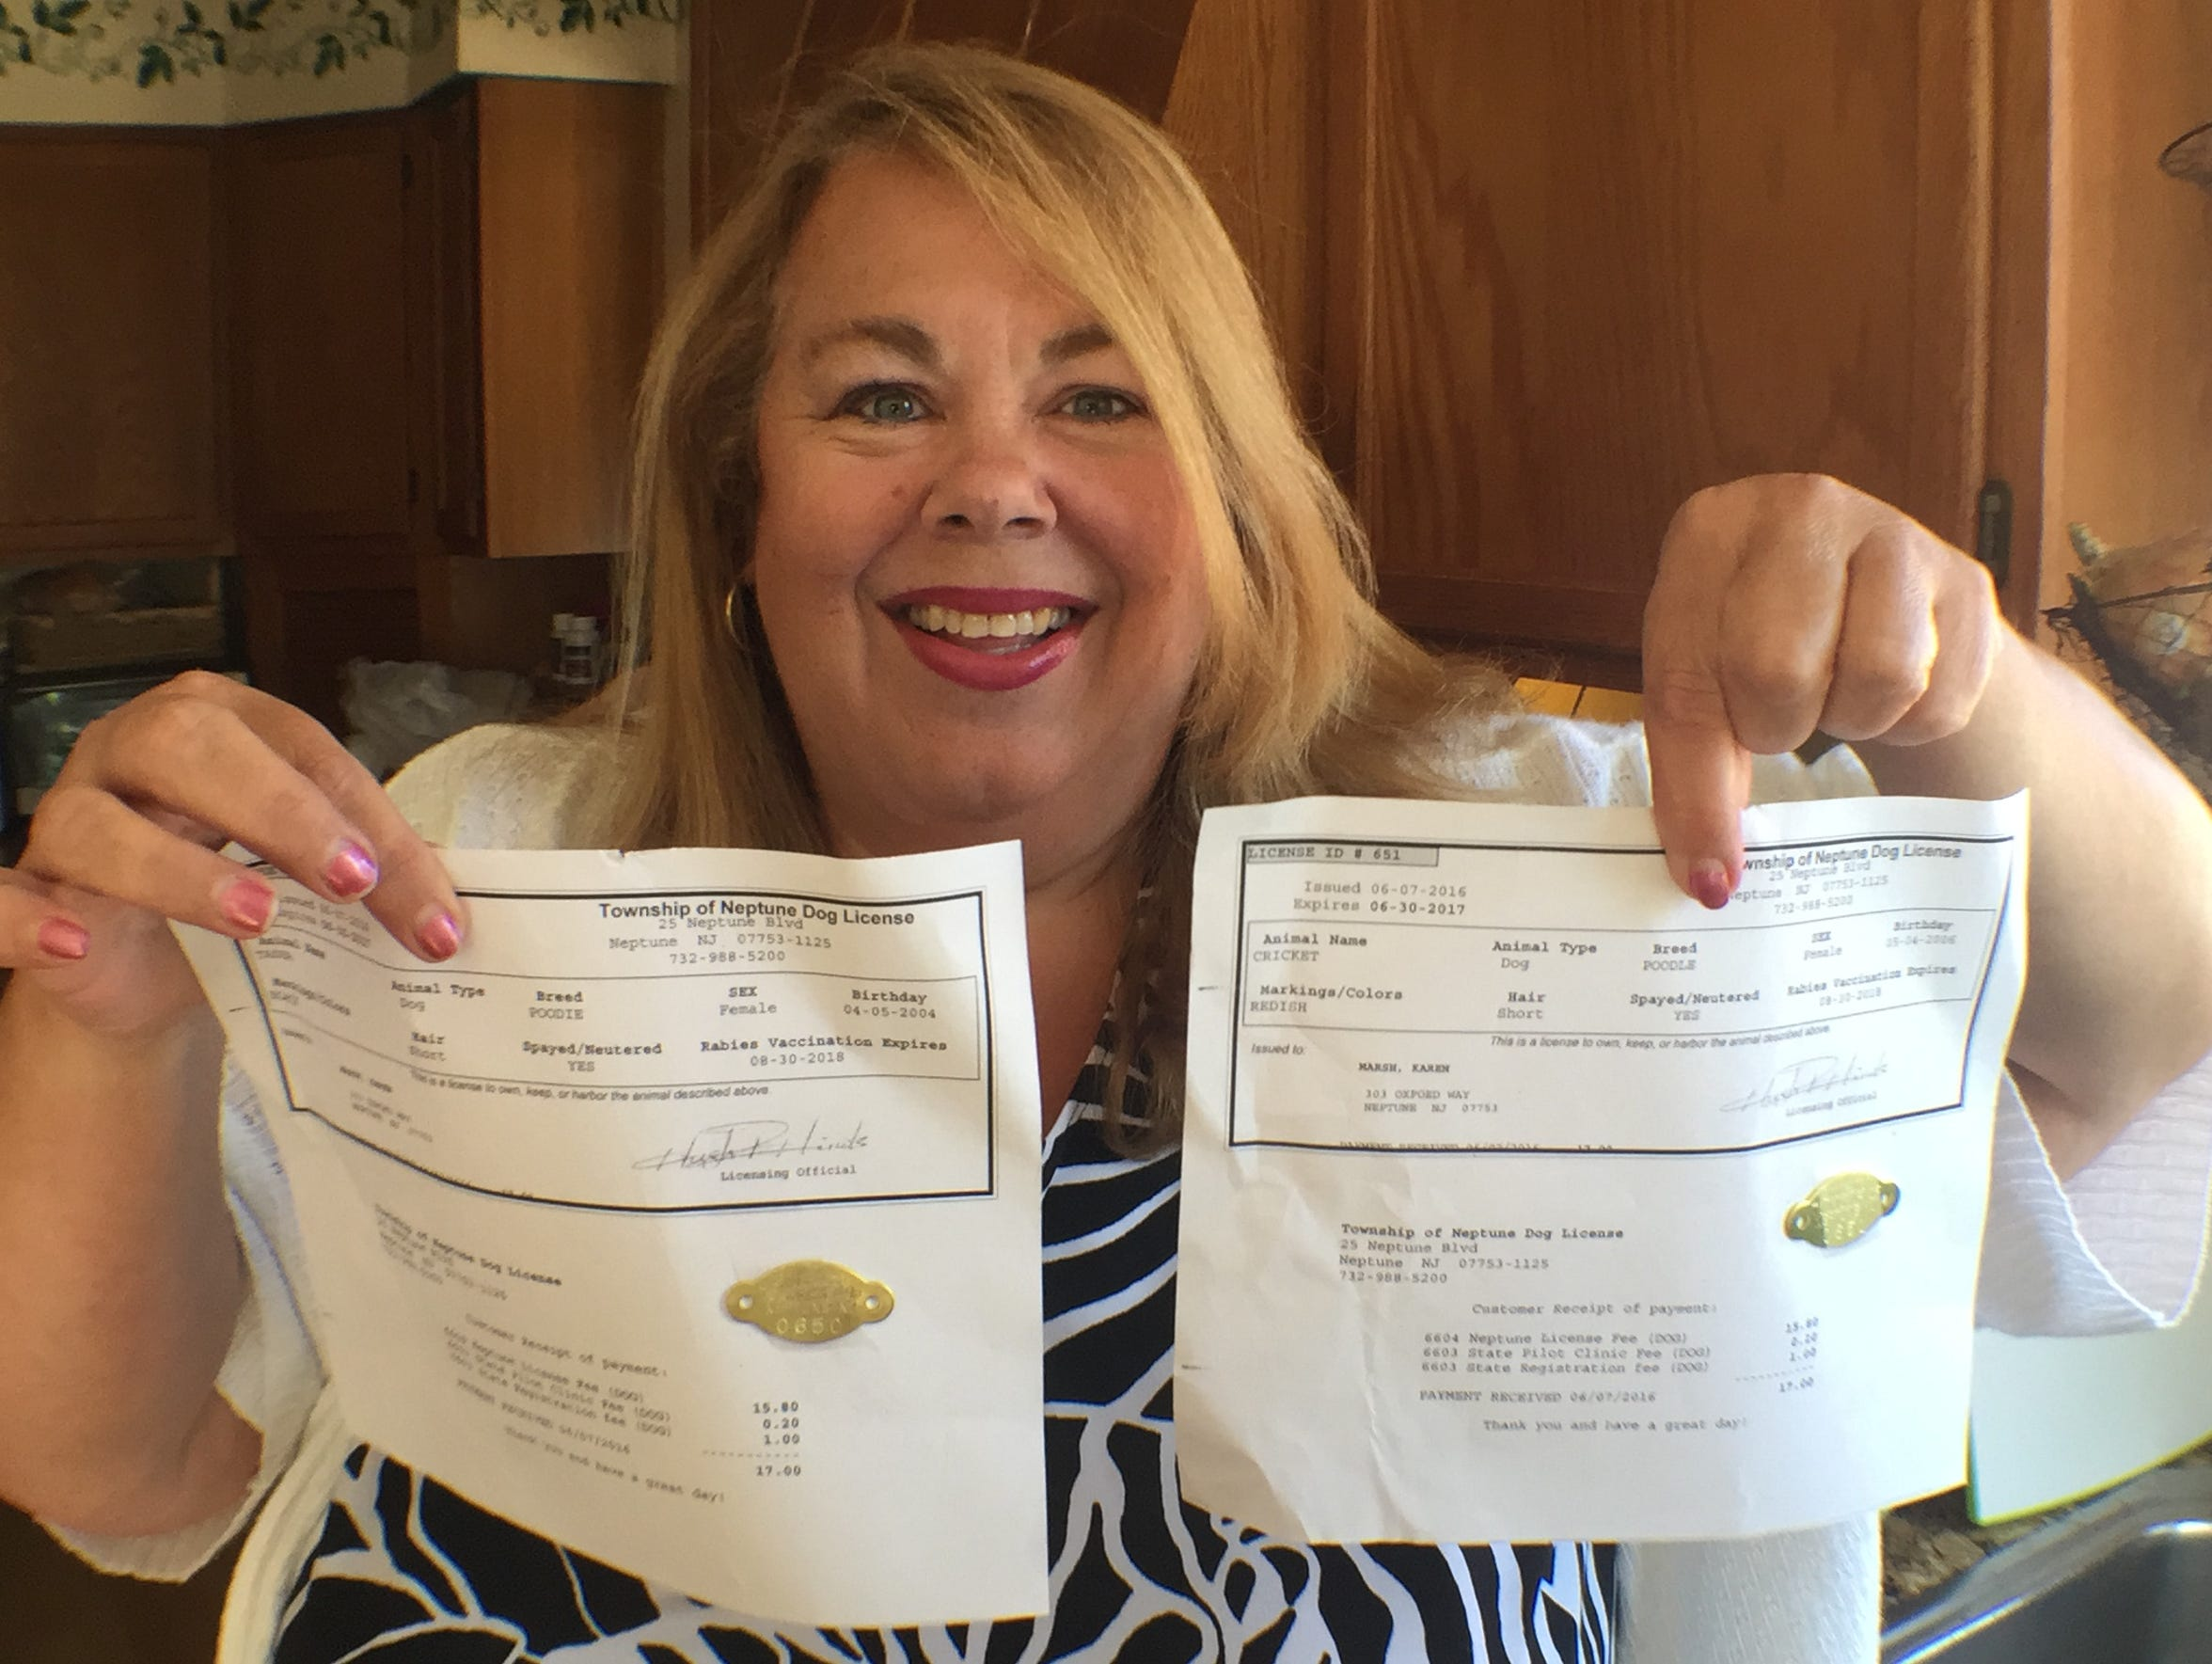 Karen Marsh, of Neptune, holds up the dog licenses